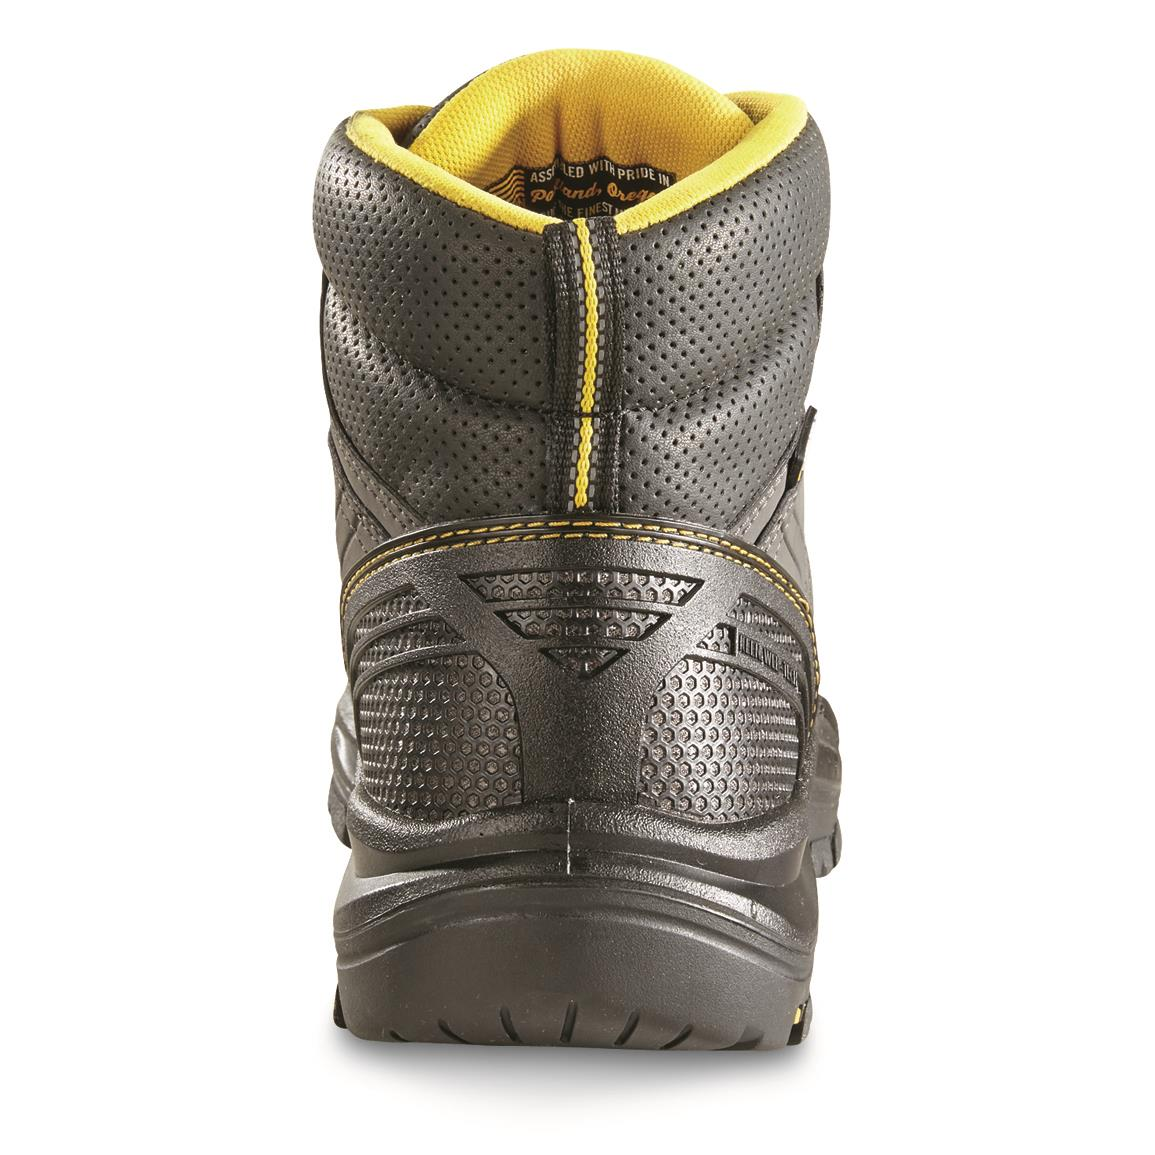 KEEN.Web Tech provides exceptional resistance in high abrasion areas while offering breathability